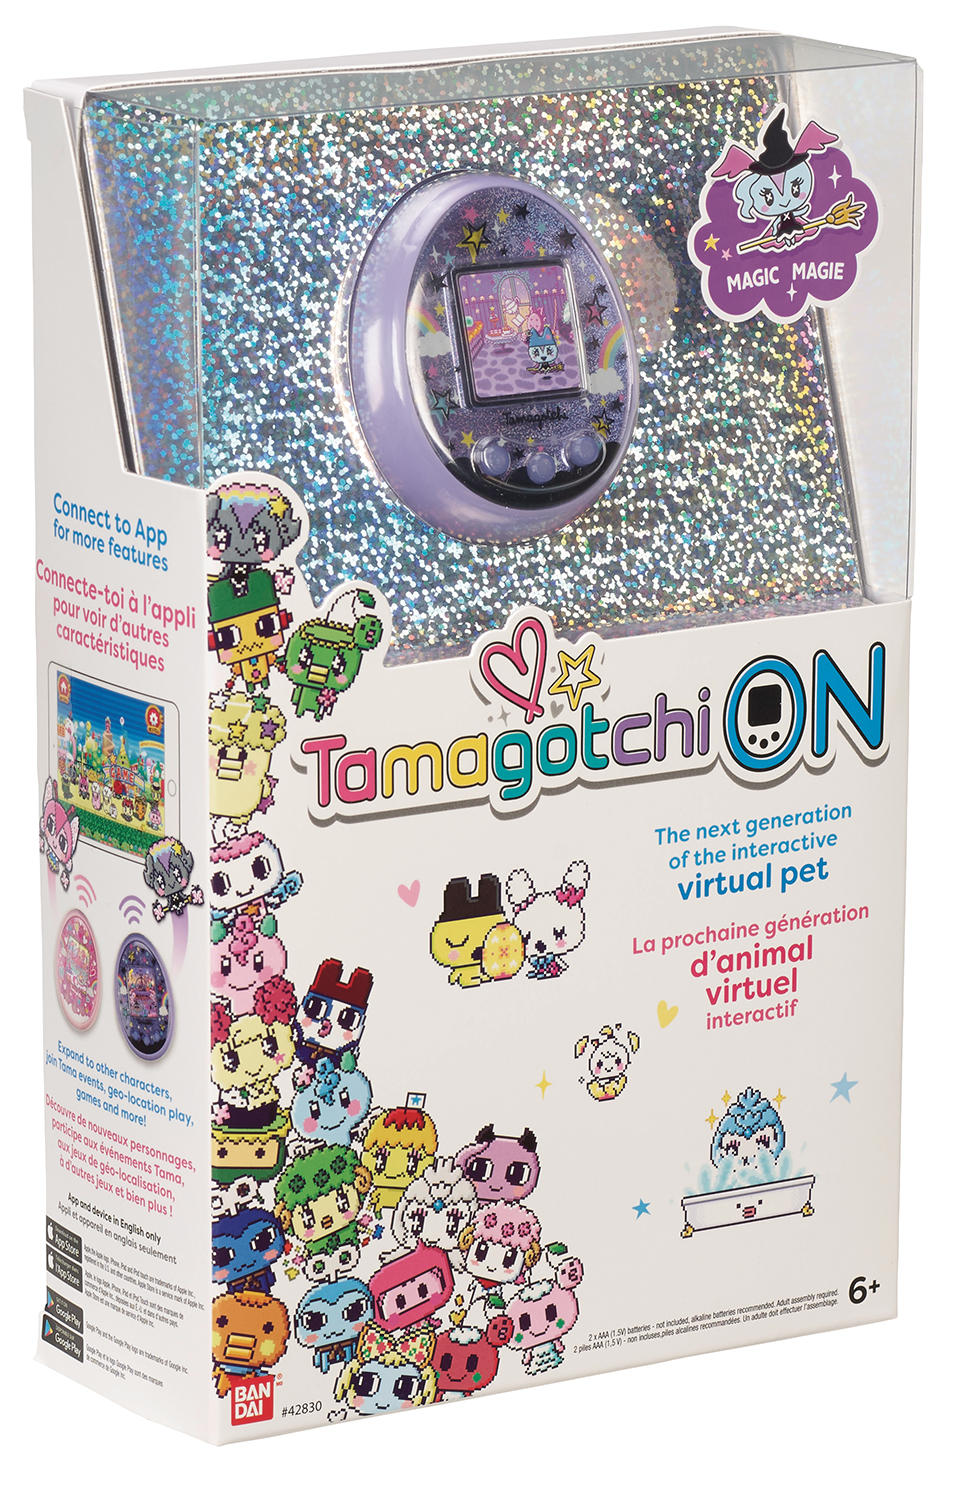 TAMAGOTCHI ON MAGIC PURPLE VIRTUAL PET